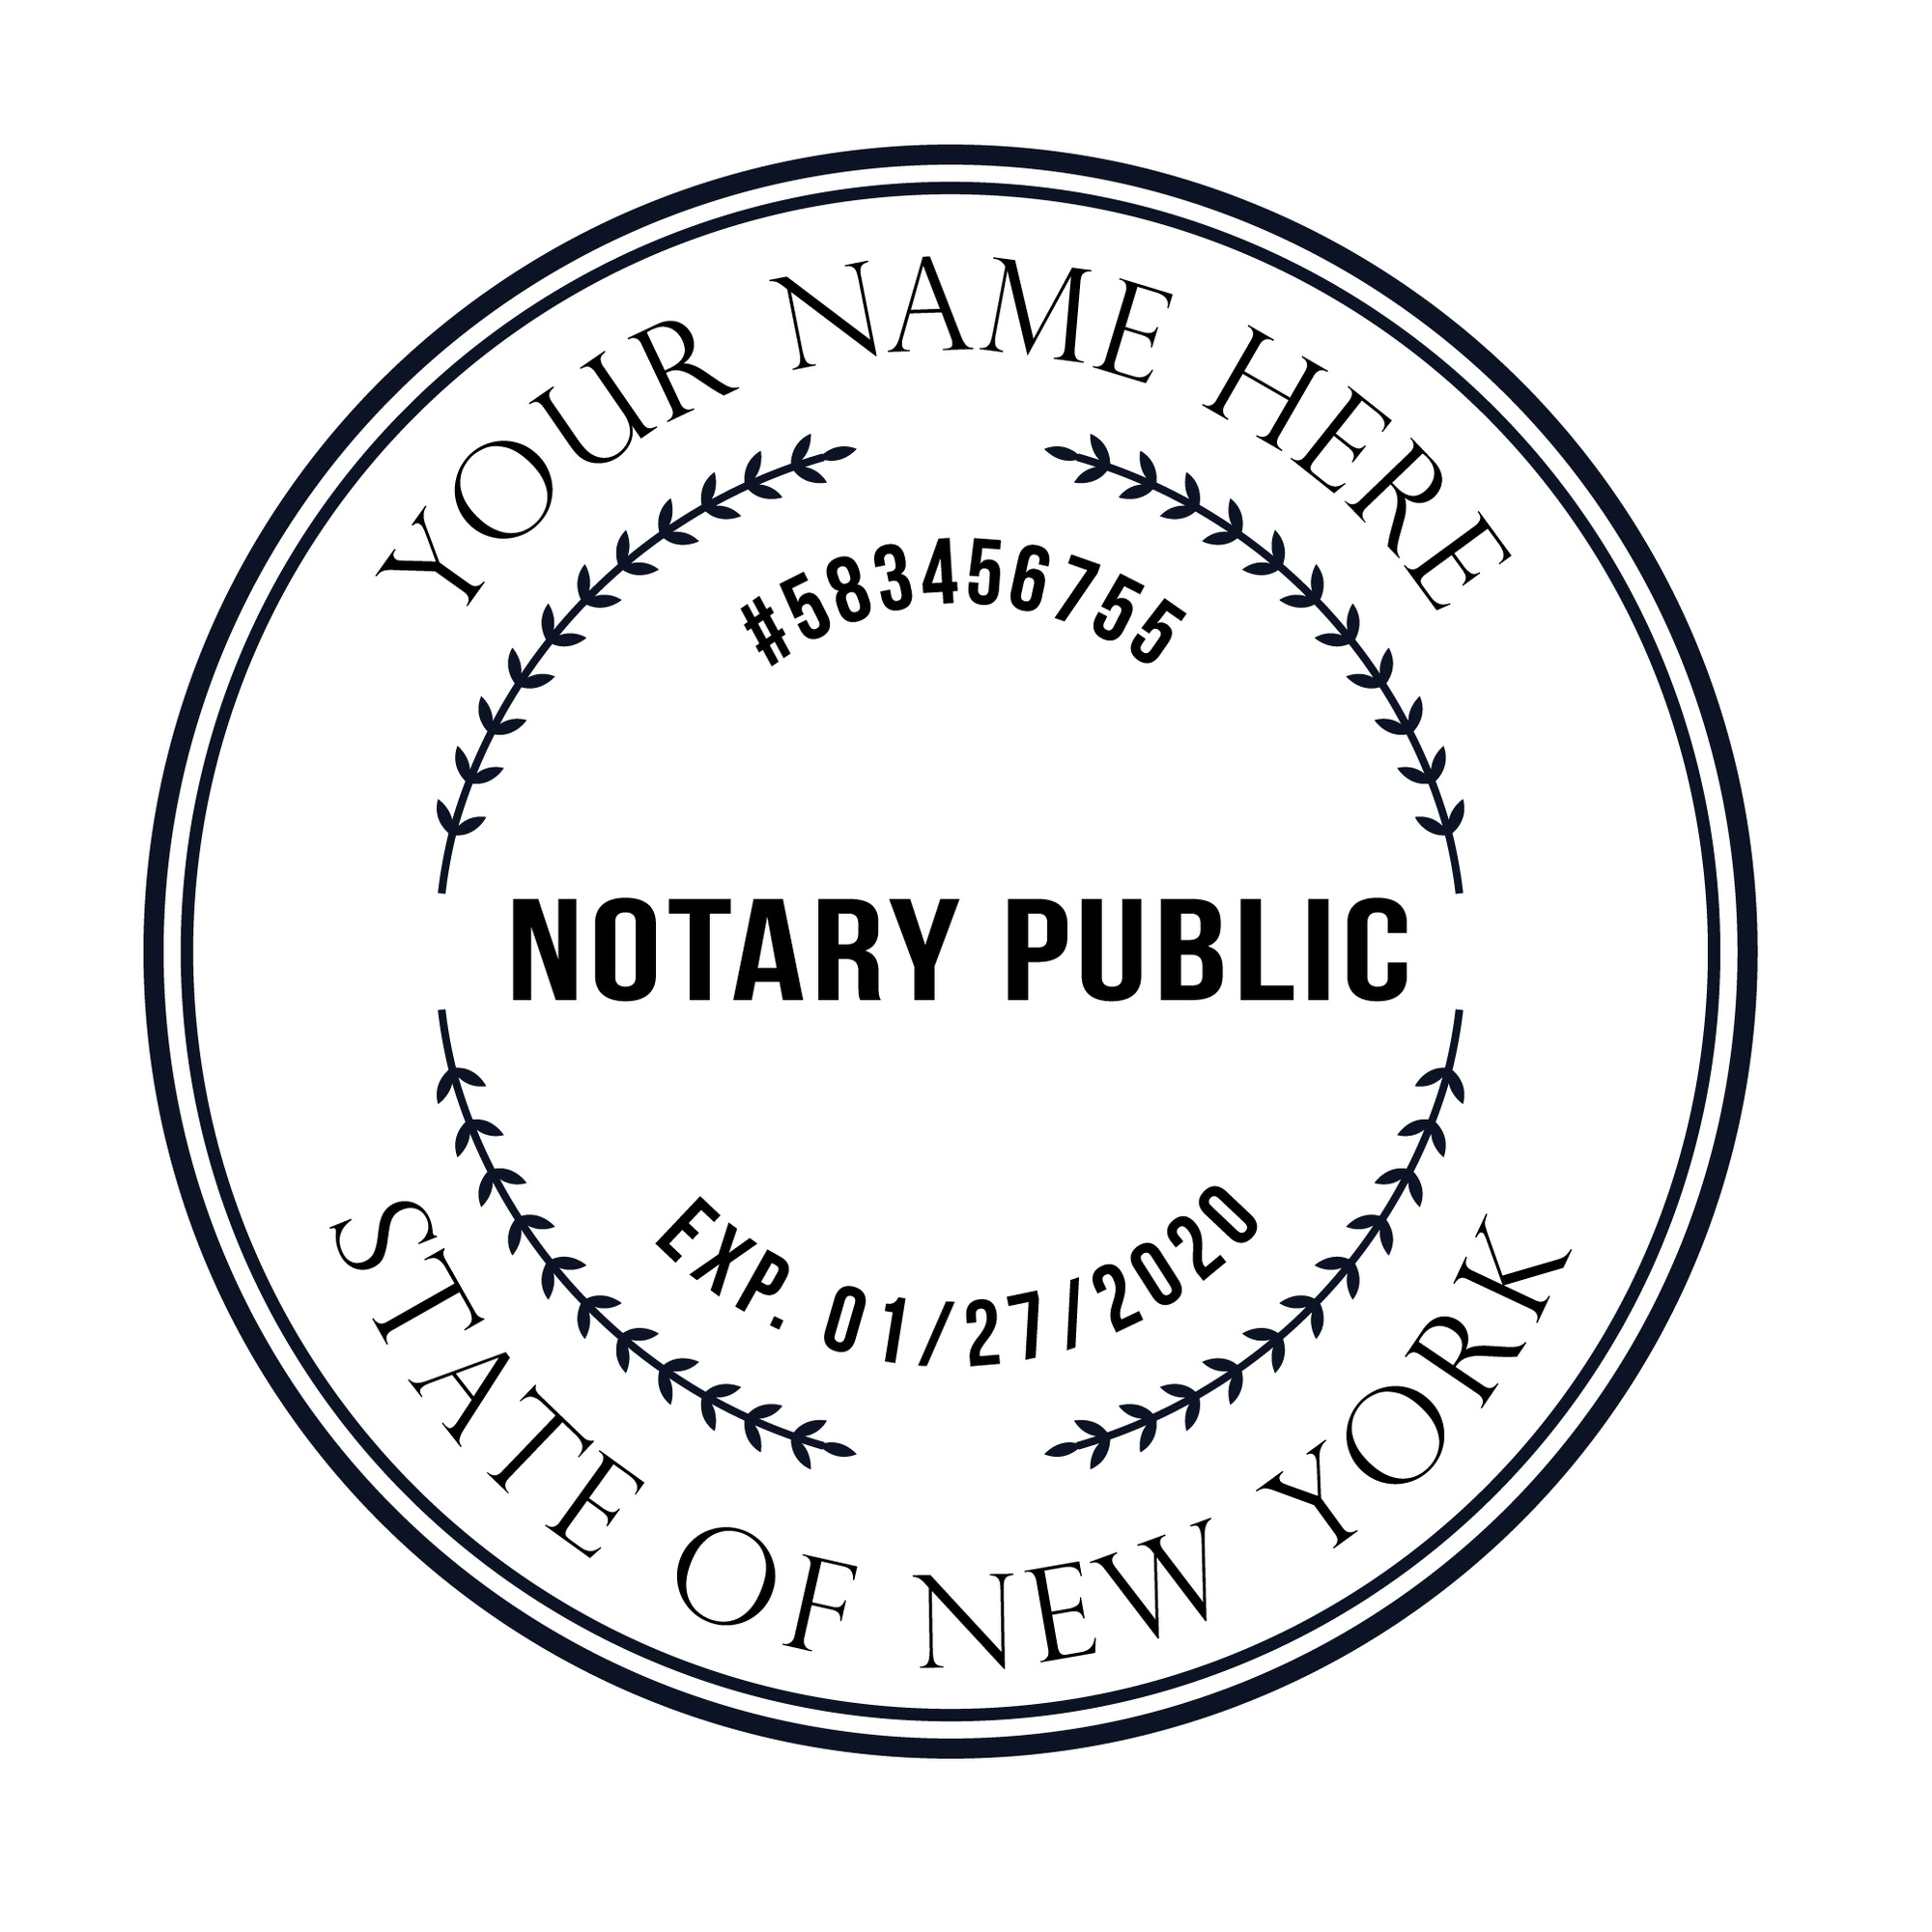 Us 19 95 Bbloop Round Notary Stamp For The State Of New York In Stamps From Home Garden On Aliexpress Com Alibaba Group